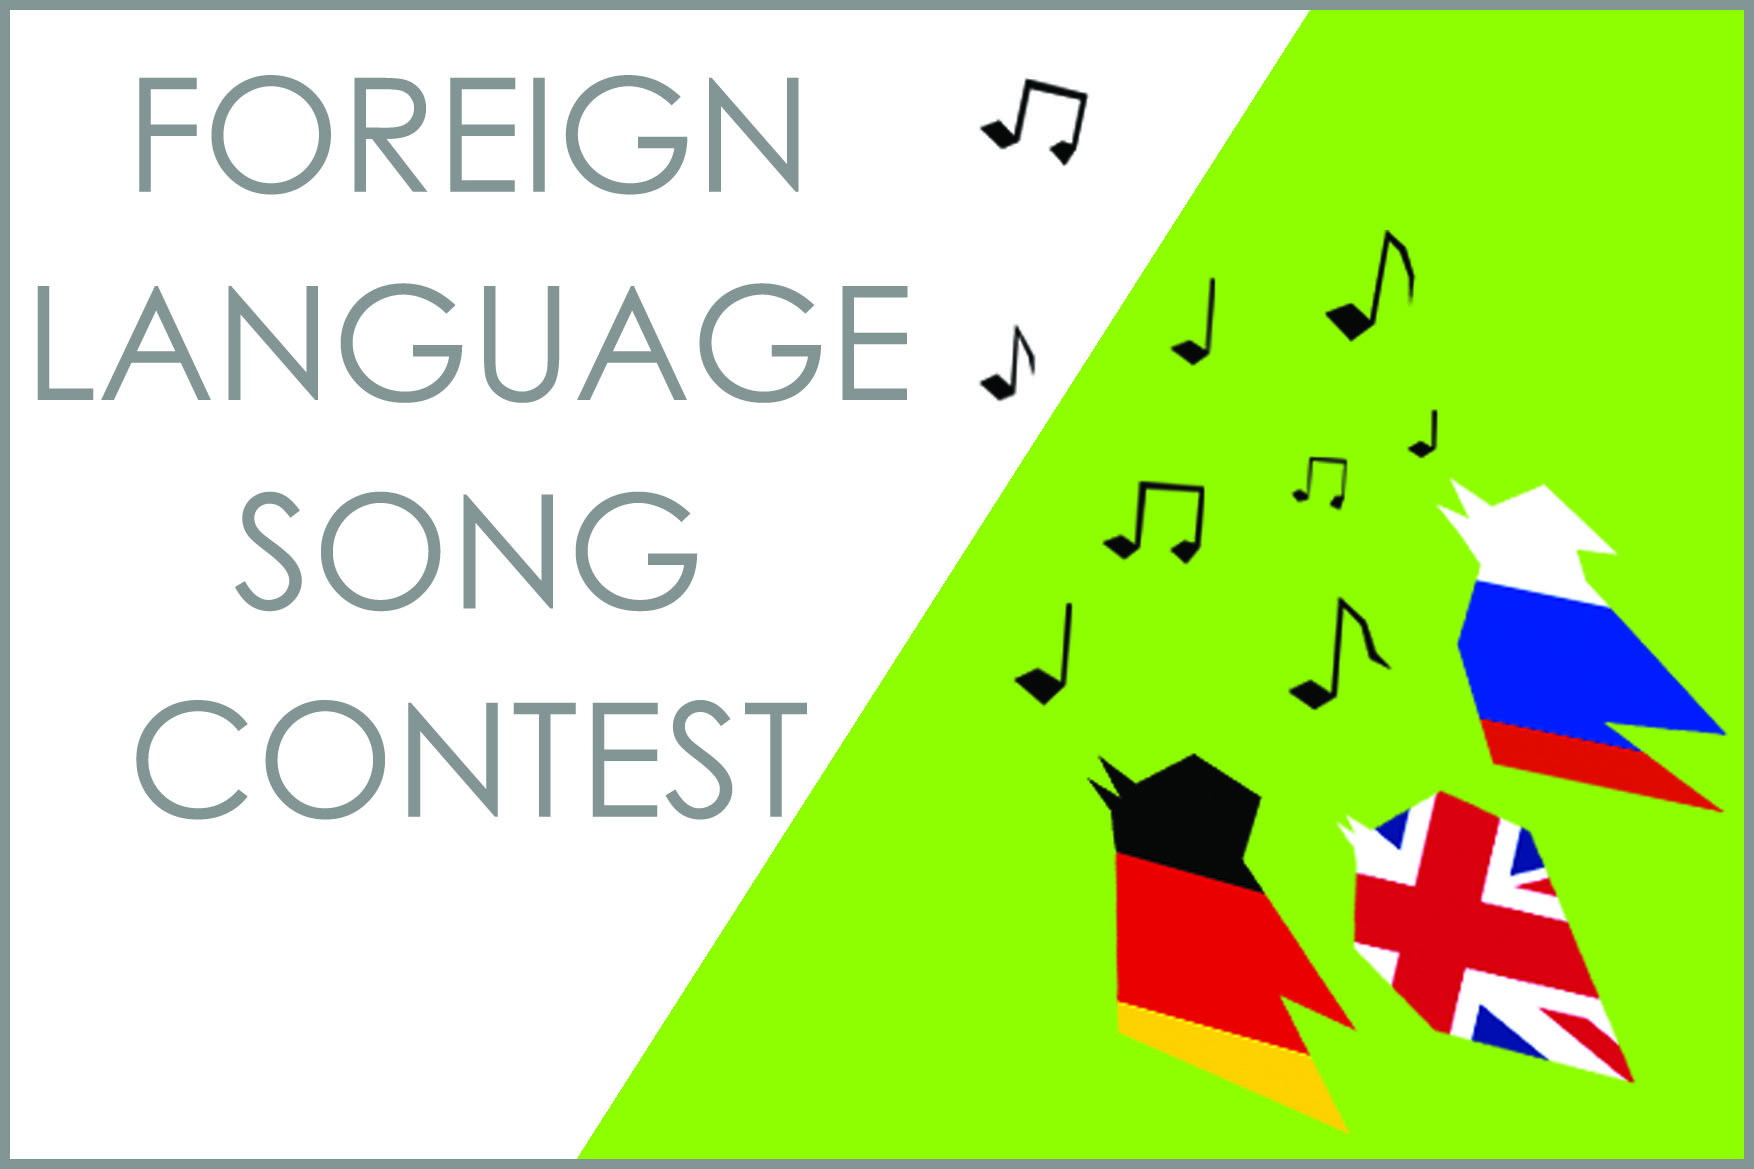 Foreign Language Song Contest